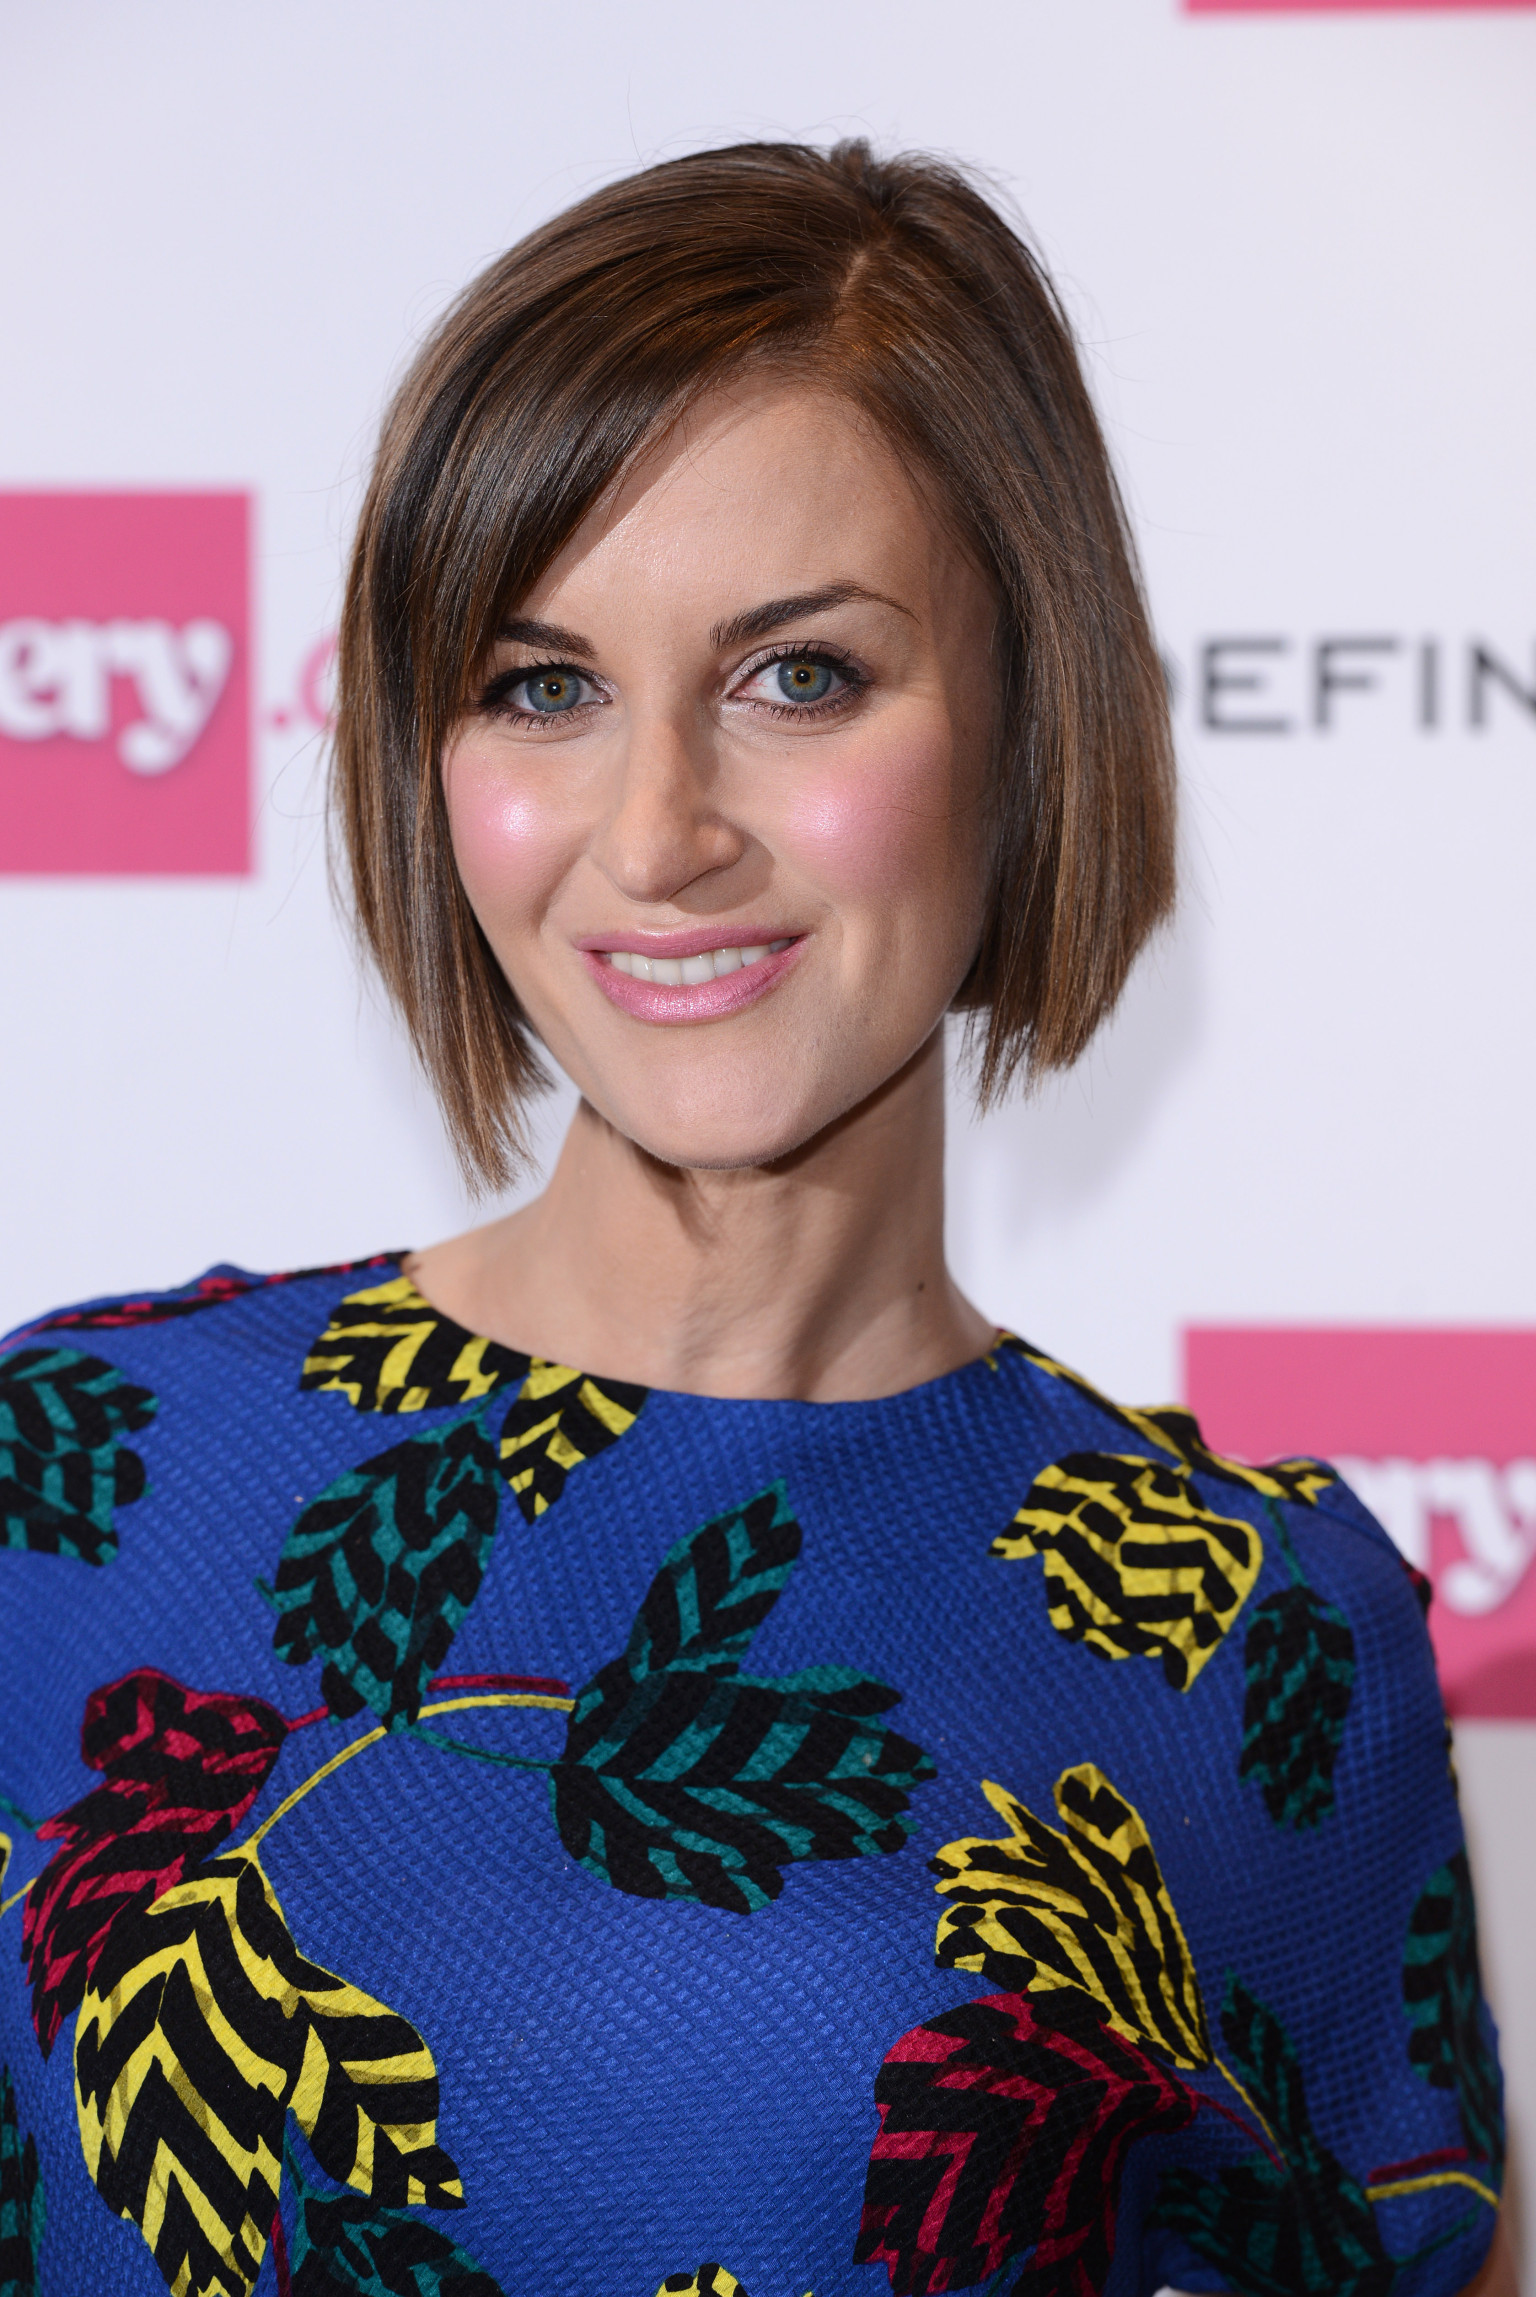 u0026 39 coronation street u0026 39  star katherine kelly pregnant with